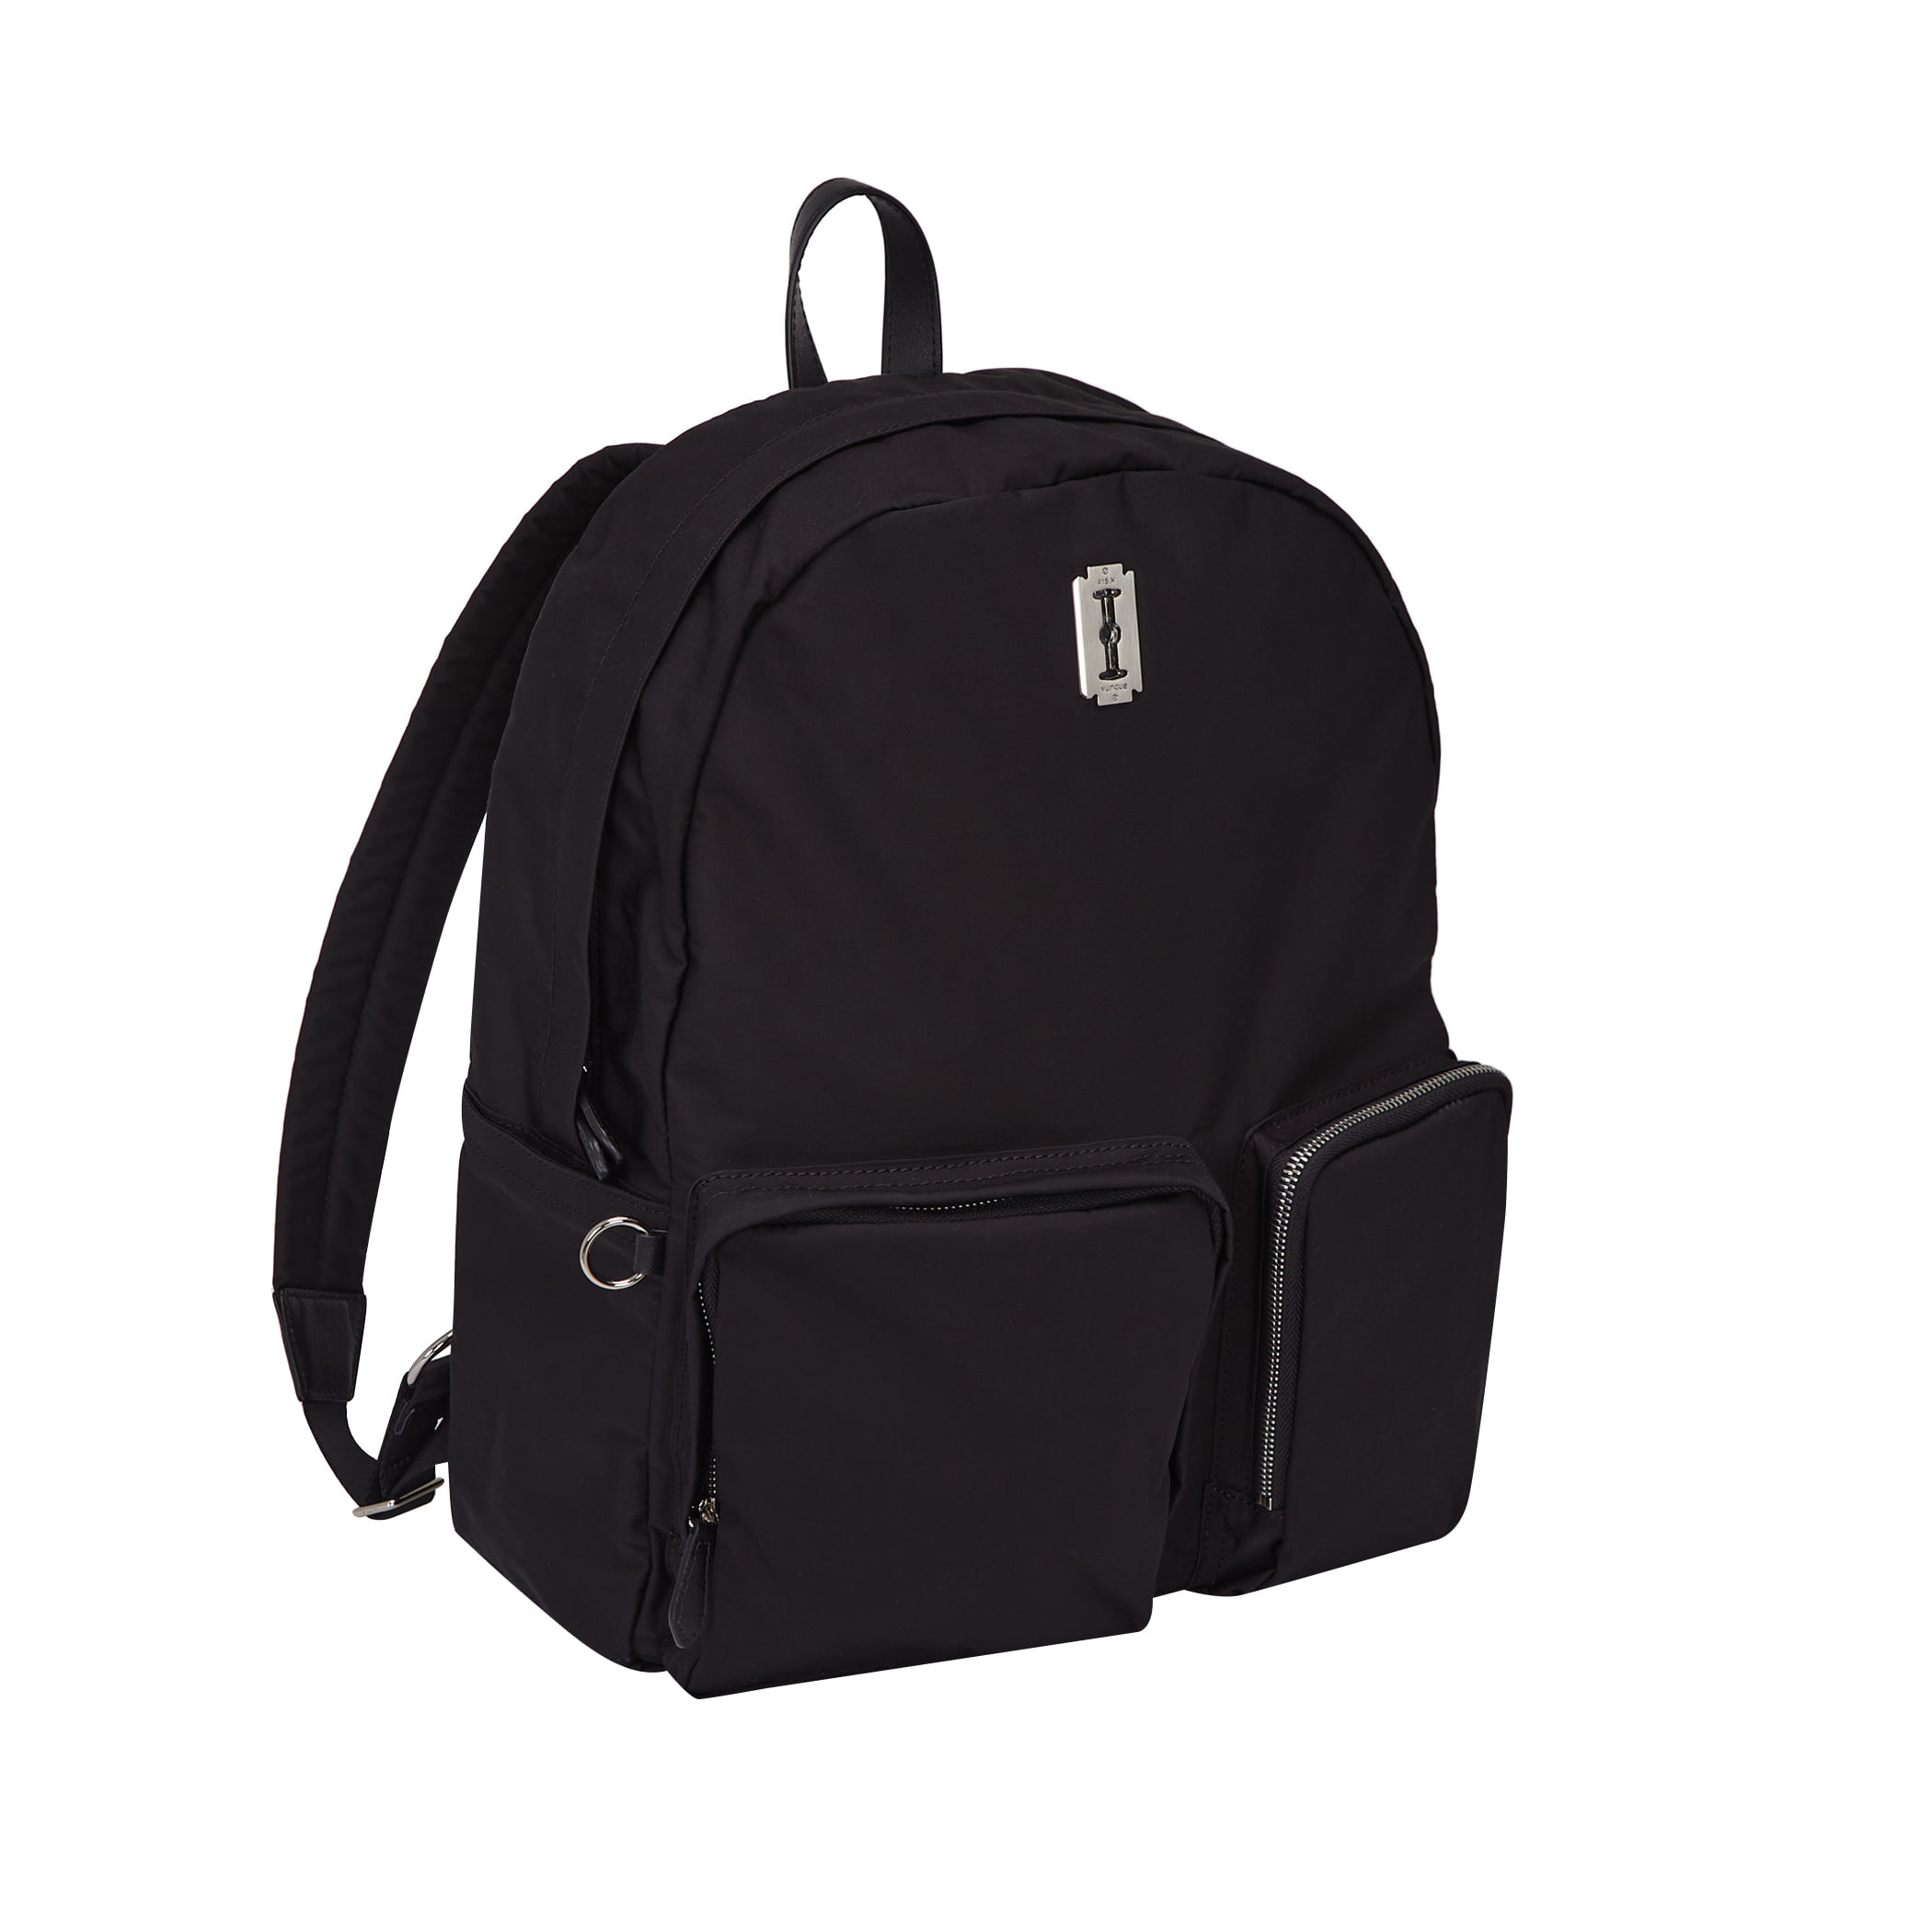 Hey Pass Backpack (헤이 패스 백팩) Black